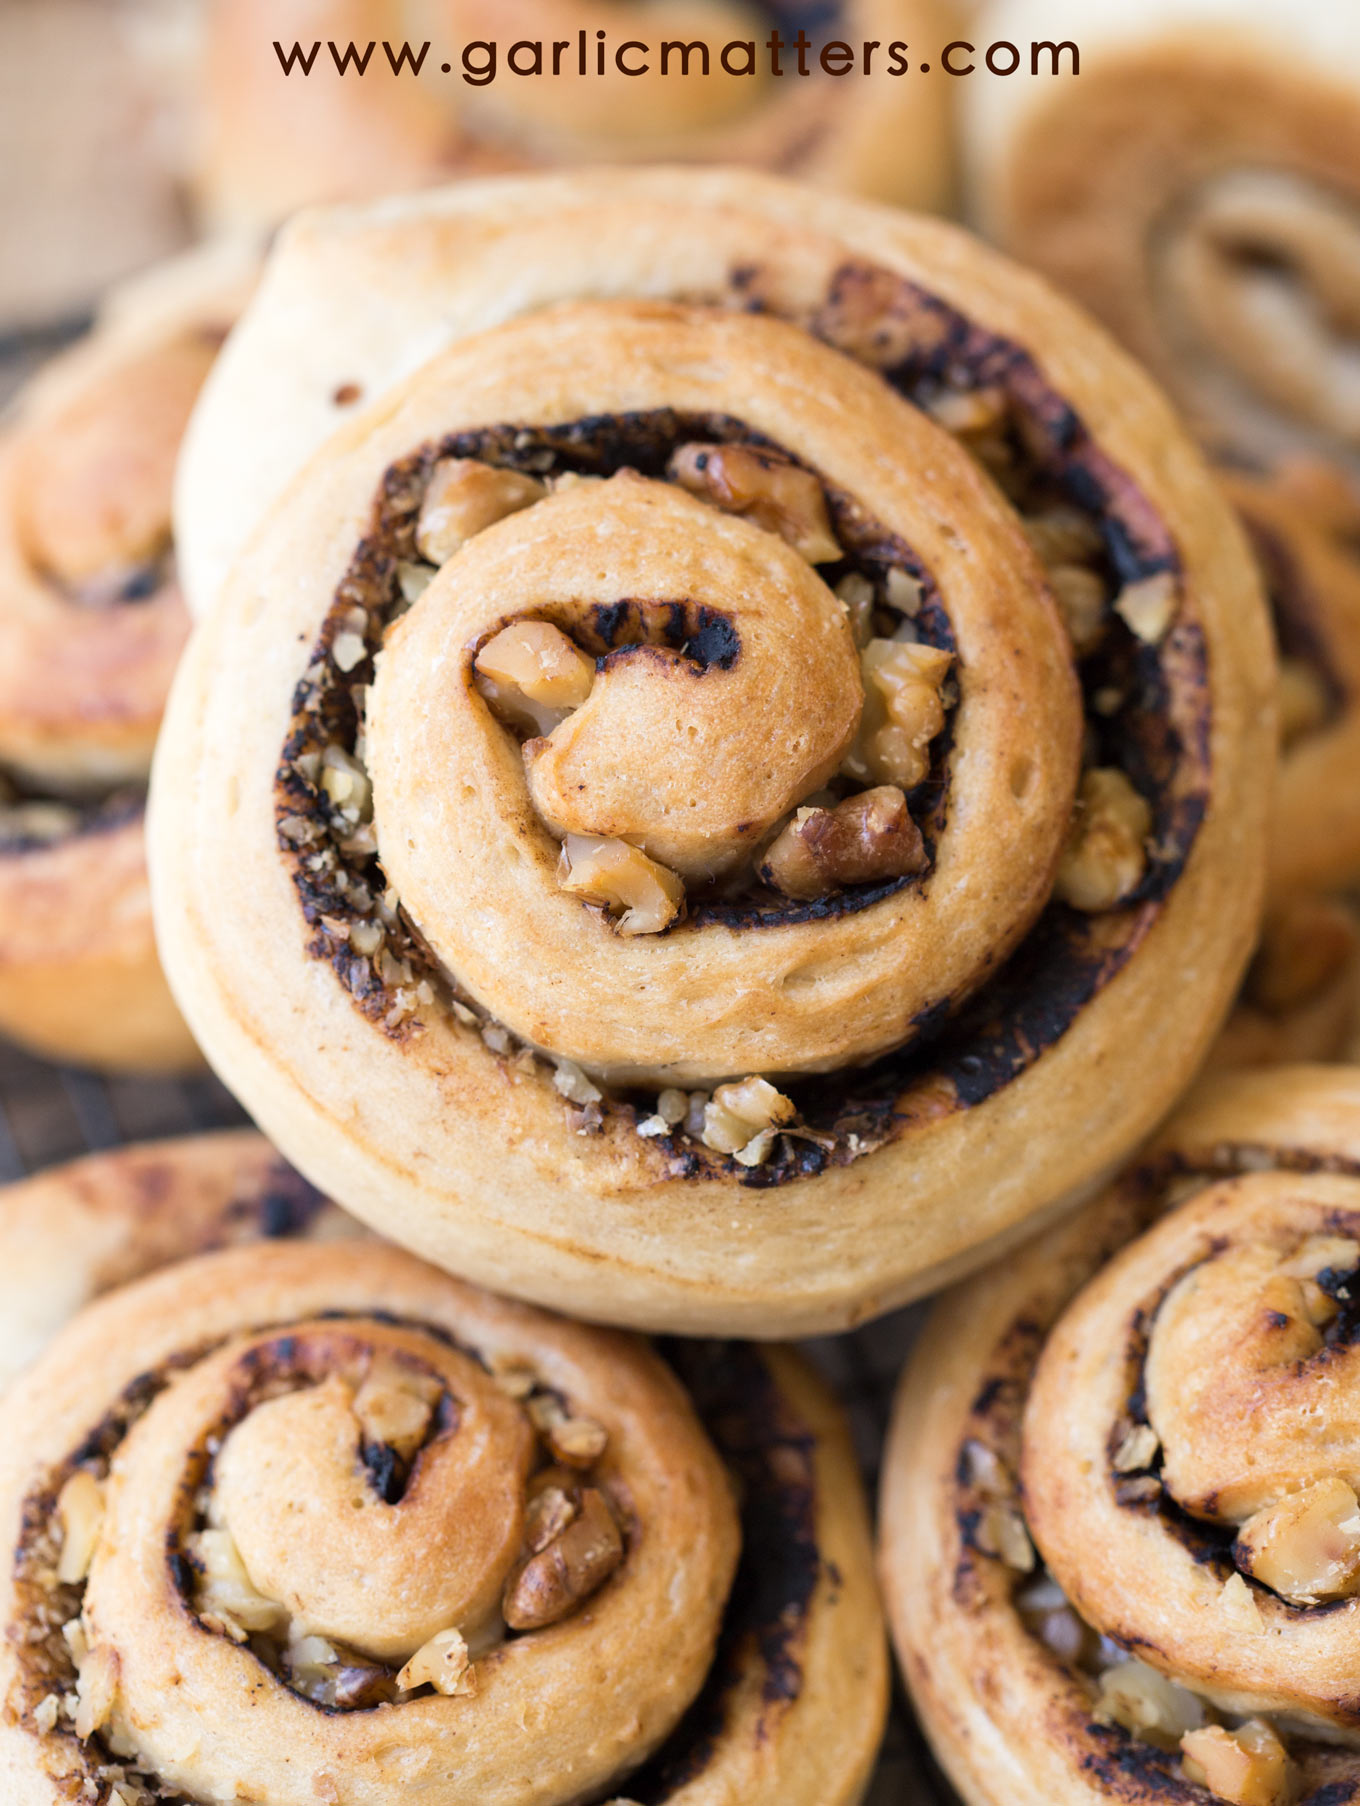 Walnut and Black Garlic Bread Rolls are perfect as a vehicle for any topping, sweet or savoury. Easy recipe, divine flavour!